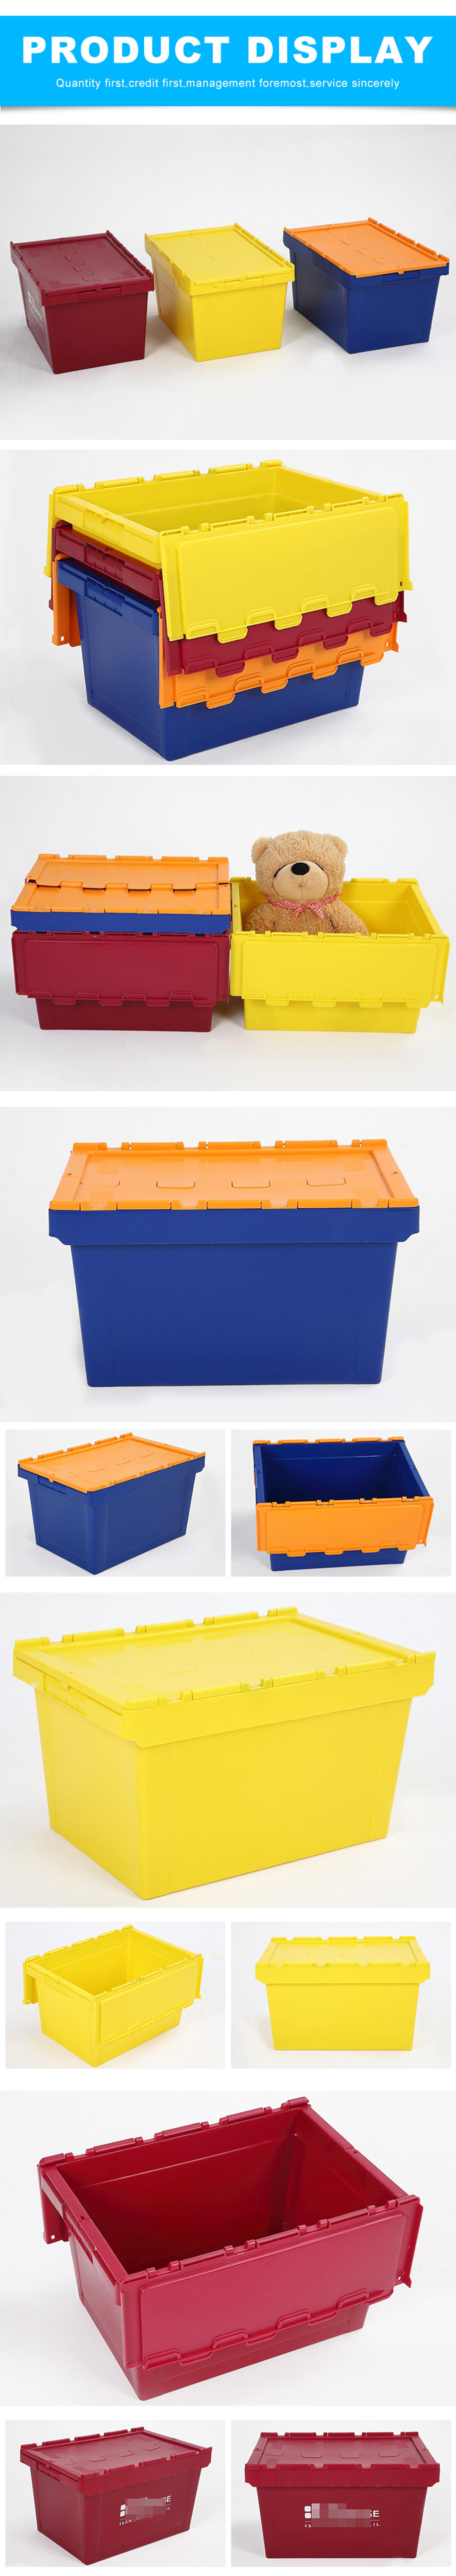 transfer crates 40KG load plastic container moving crates foldable lids/heavy duty moving boxes